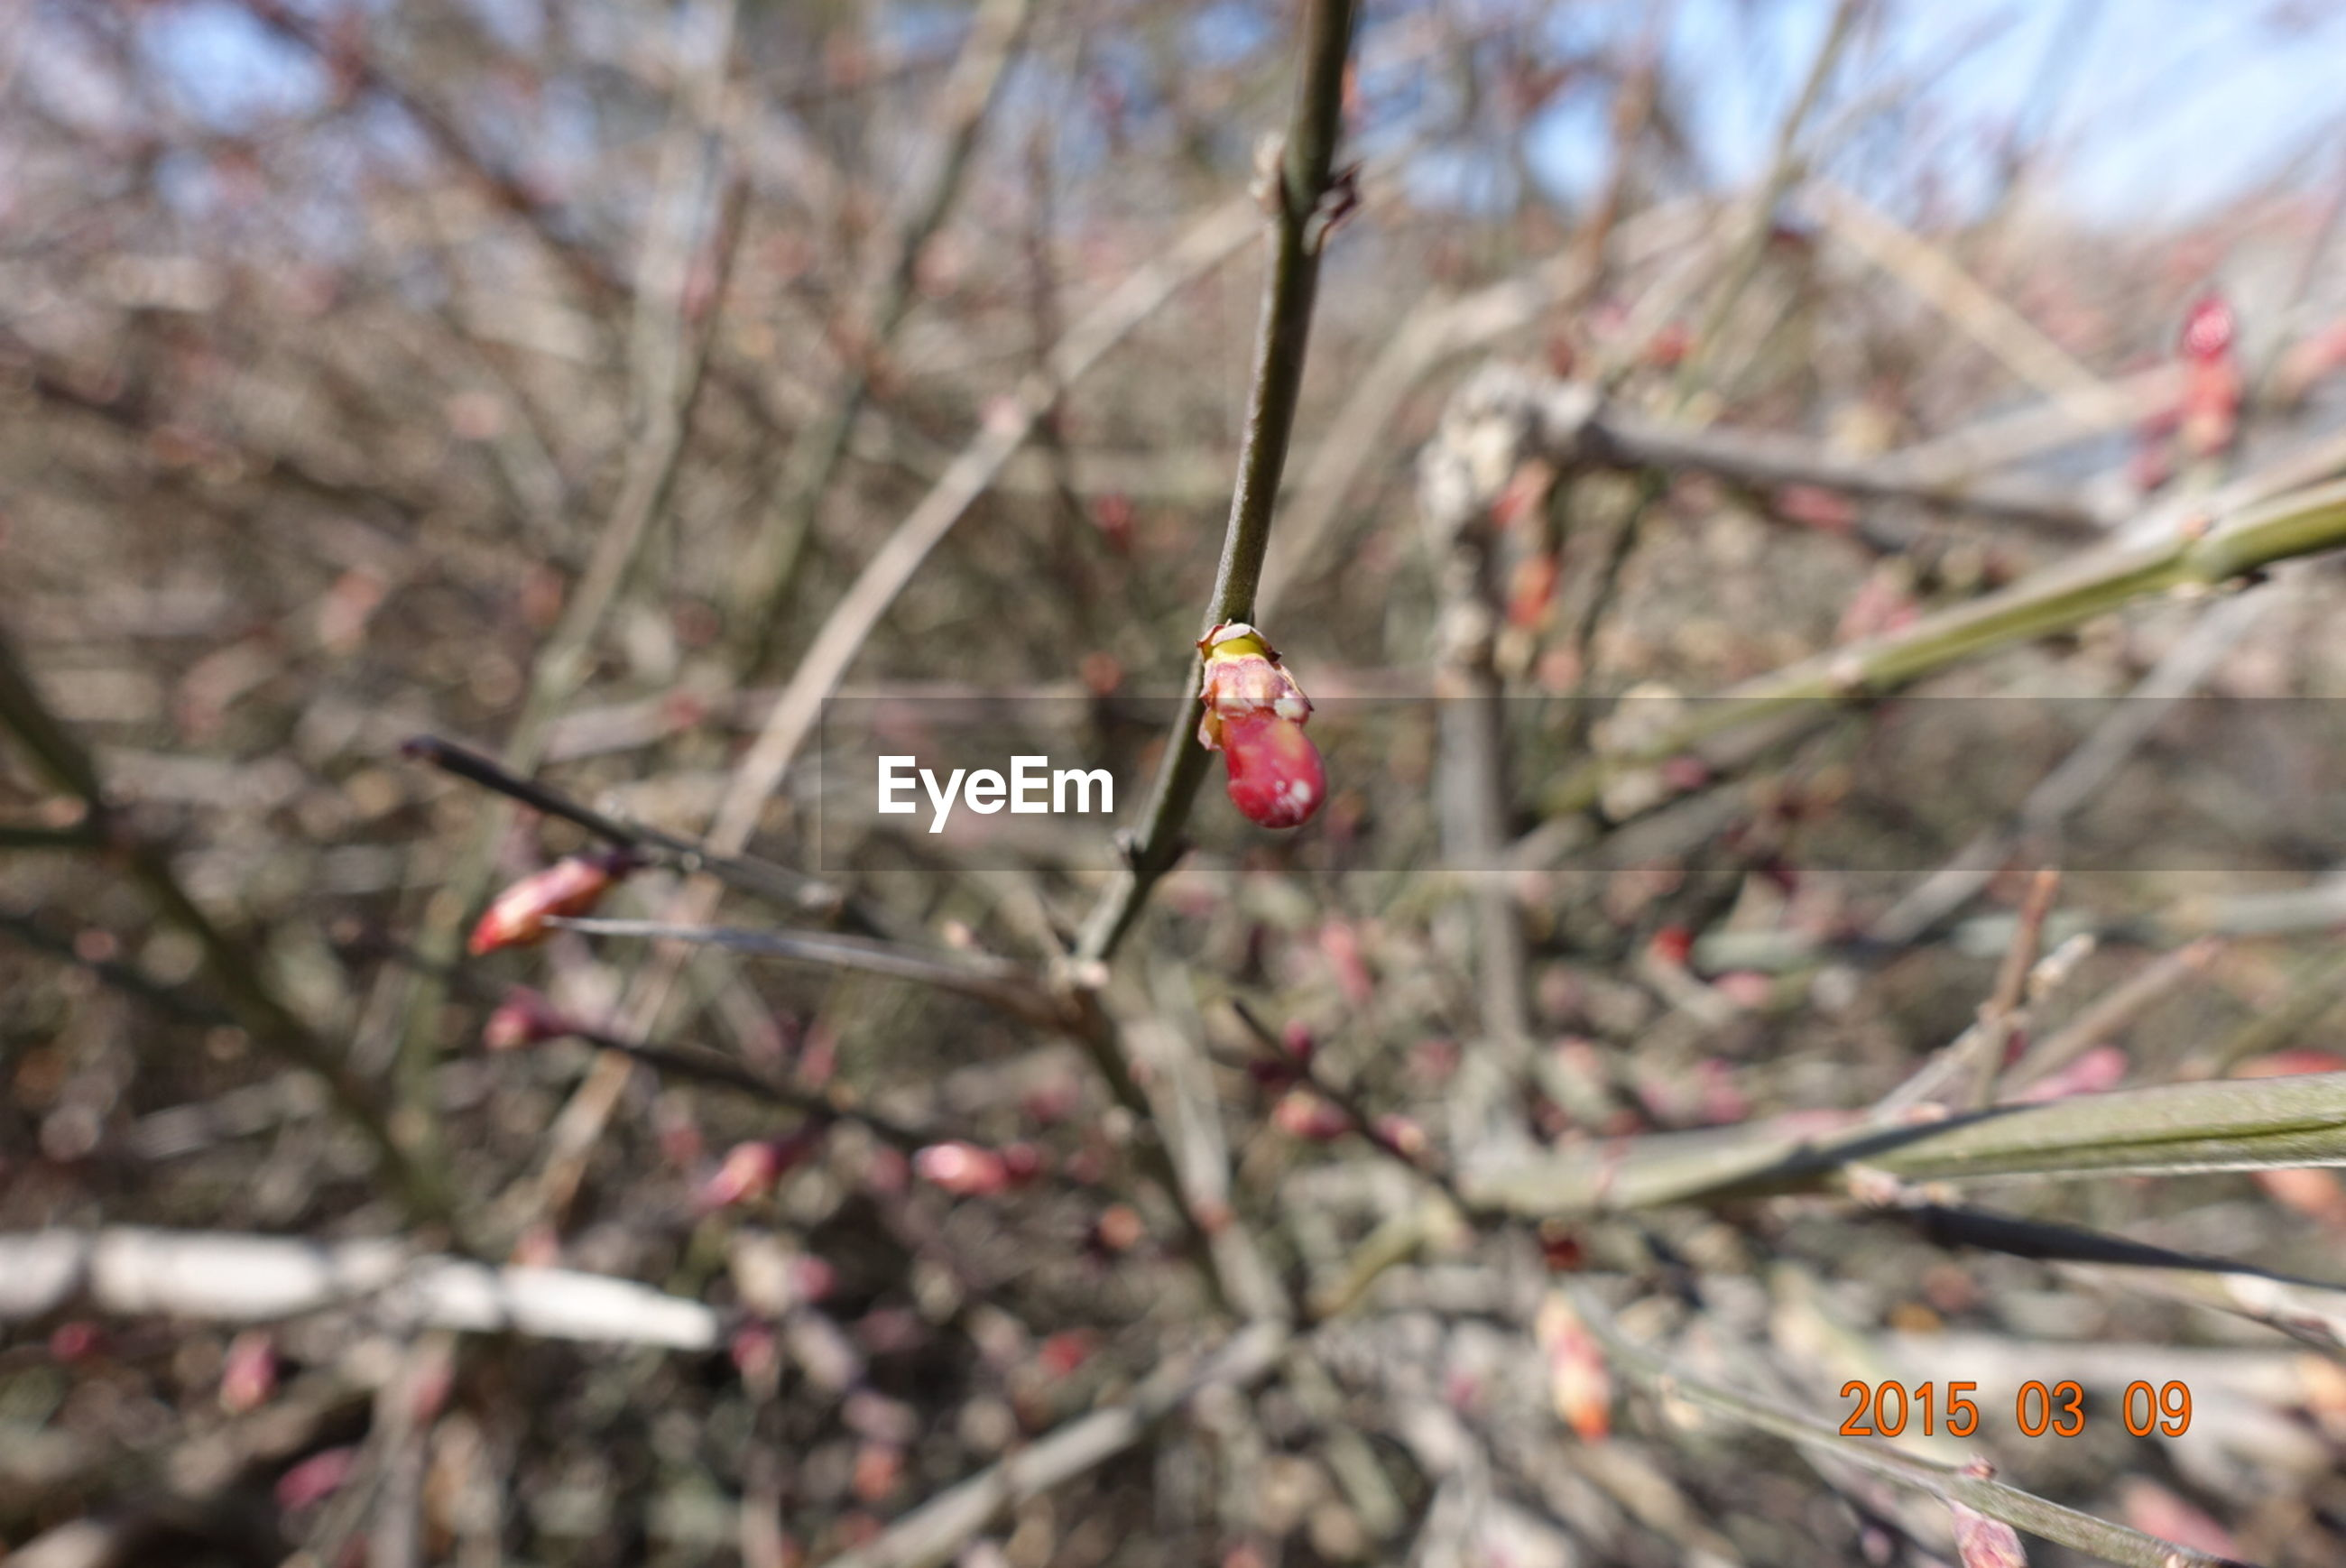 branch, tree, growth, focus on foreground, red, twig, fruit, nature, close-up, freshness, berry, selective focus, beauty in nature, leaf, berry fruit, day, cherry tree, cherry, outdoors, bud